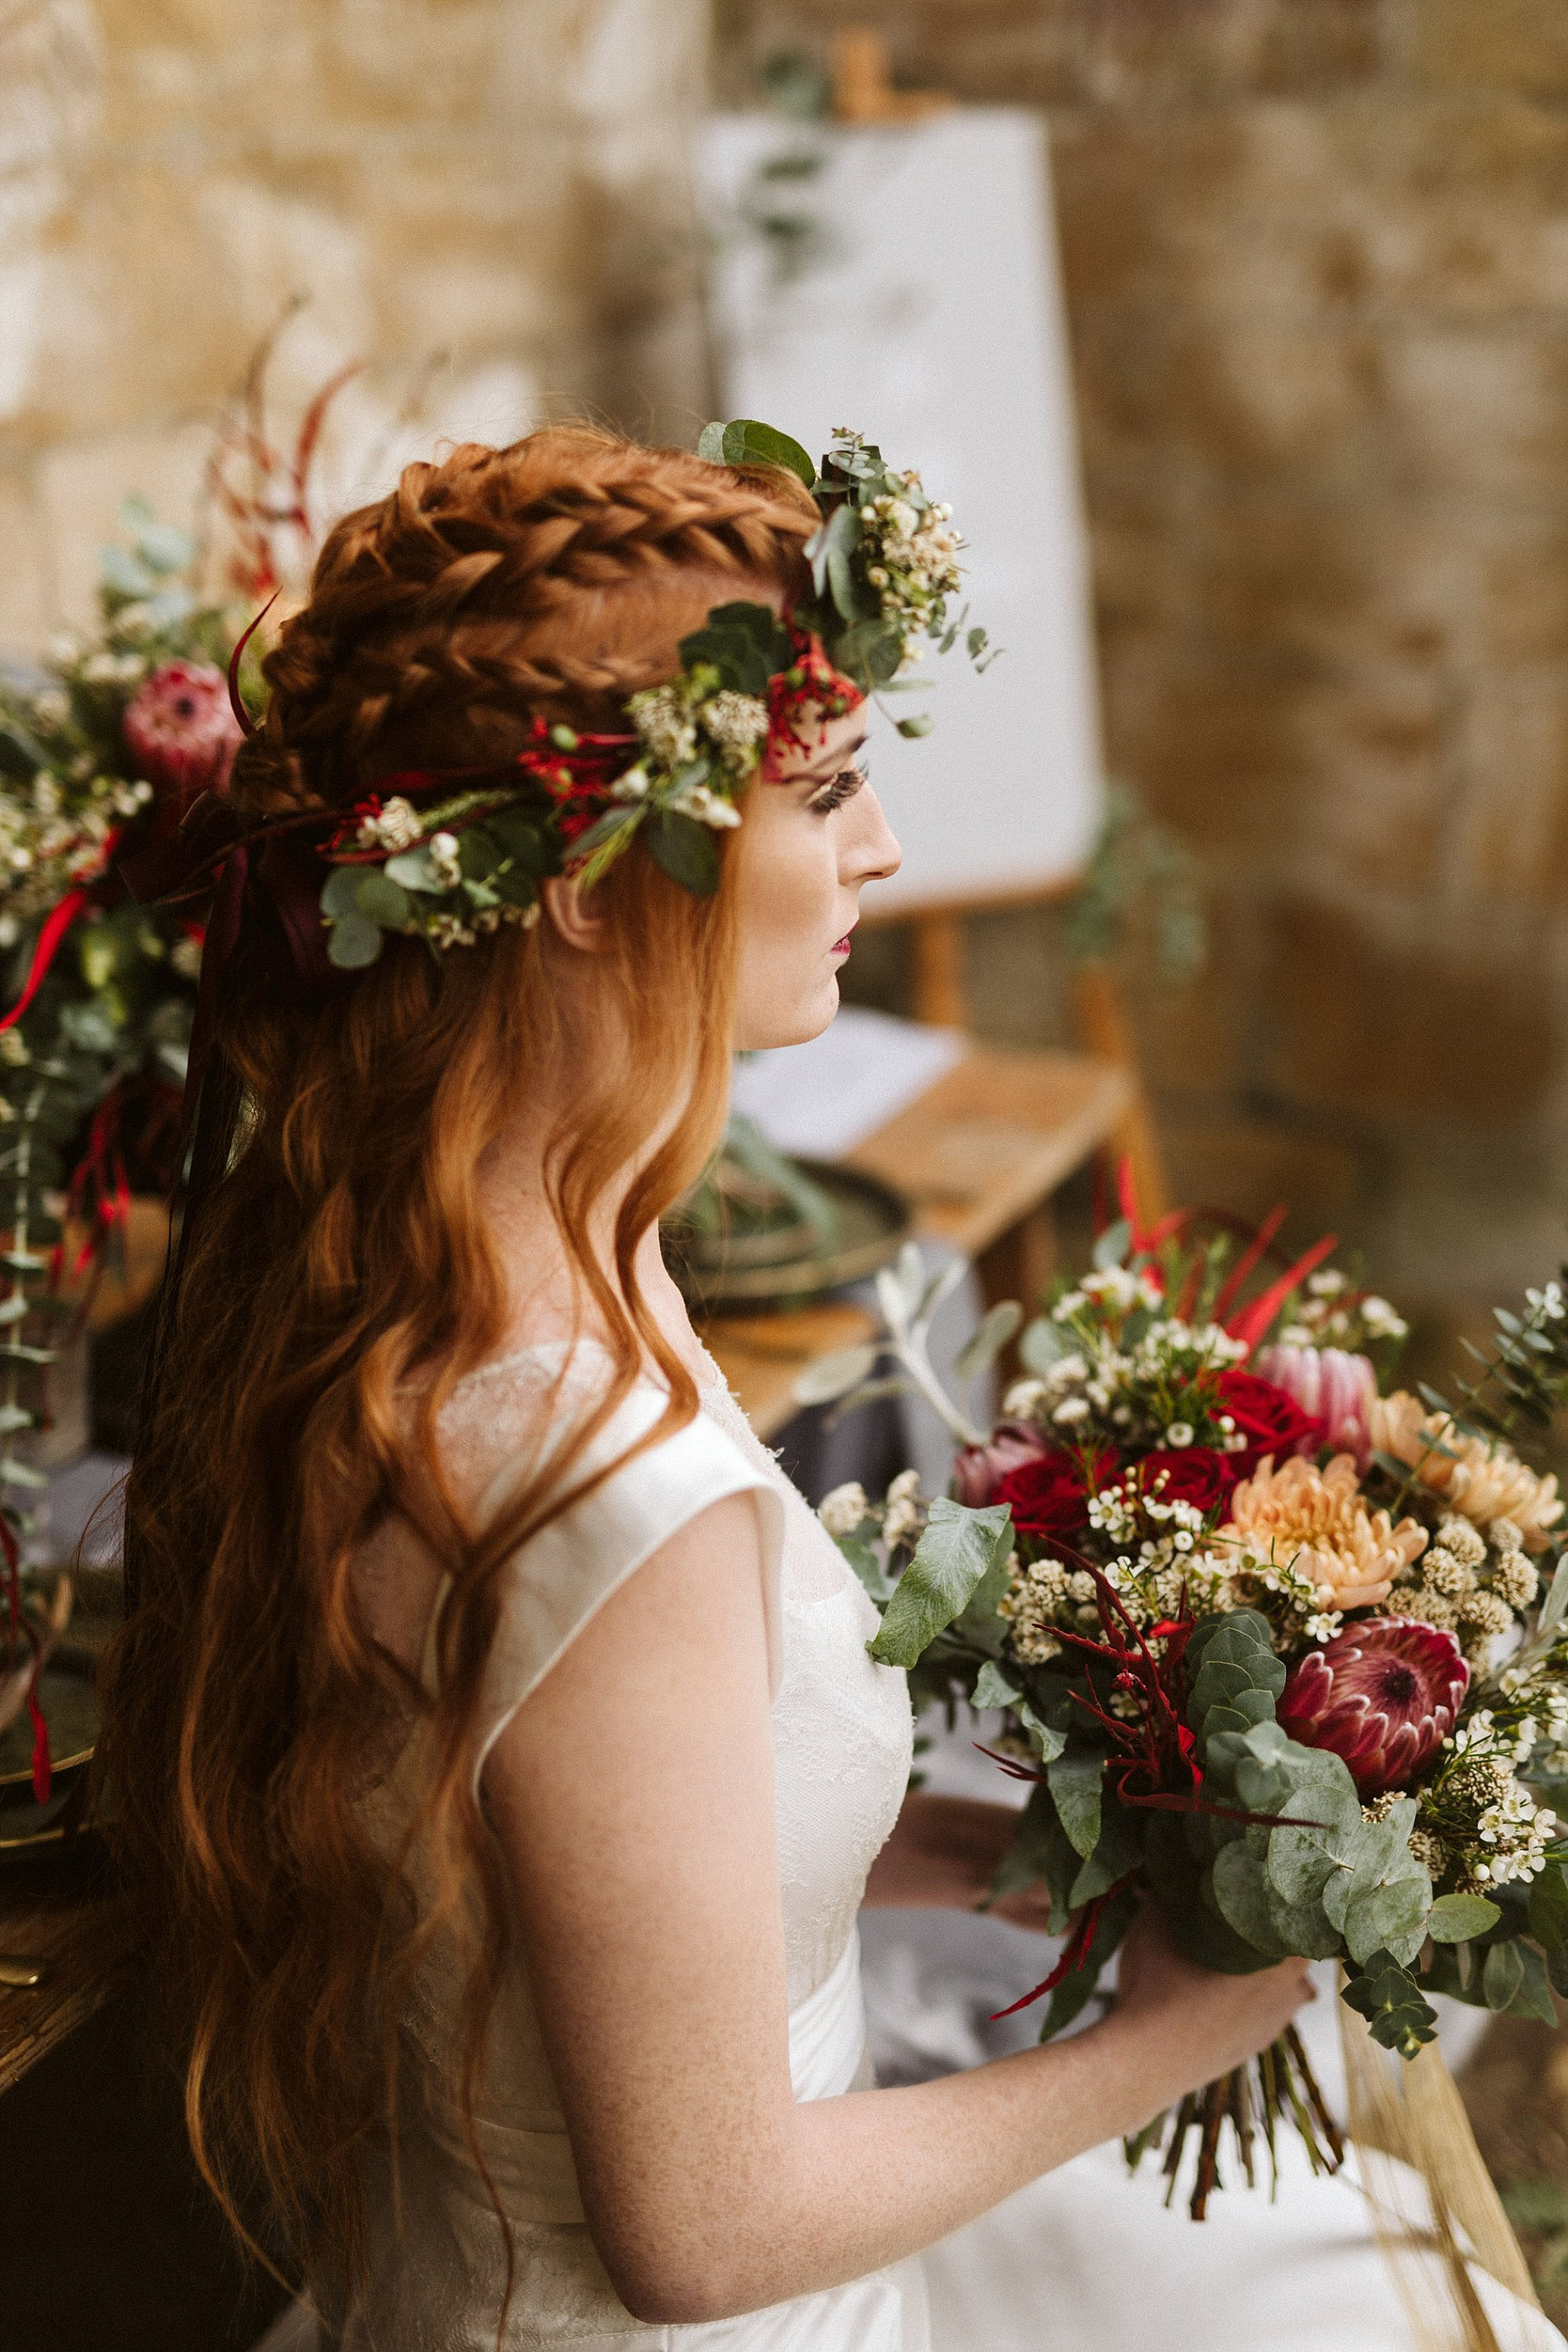 Game of Thrones Creative Bridal Shoot (c) Freya Raby (16)